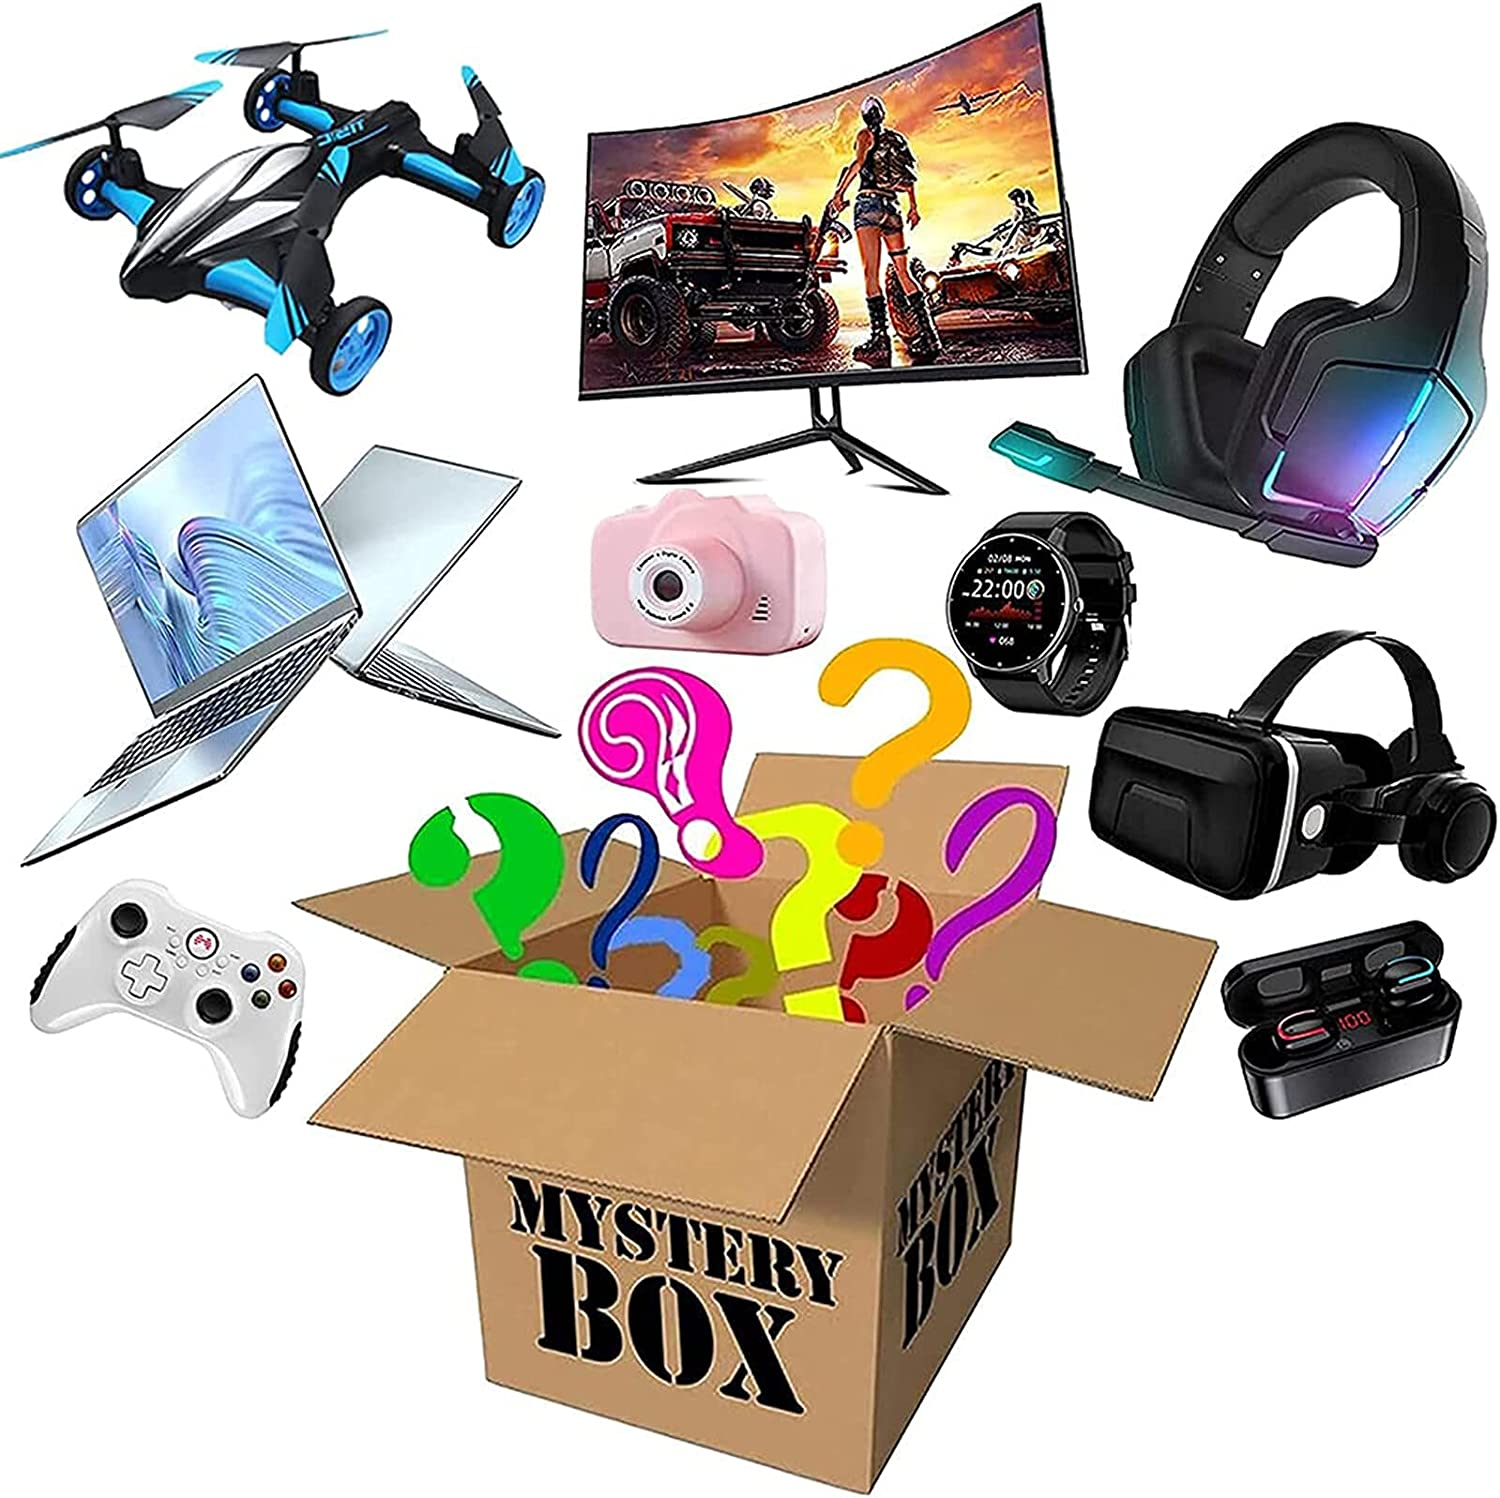 Lucky Box Rapid rise Mystery Boxes Super Electronic Long-awaited Cost Blind